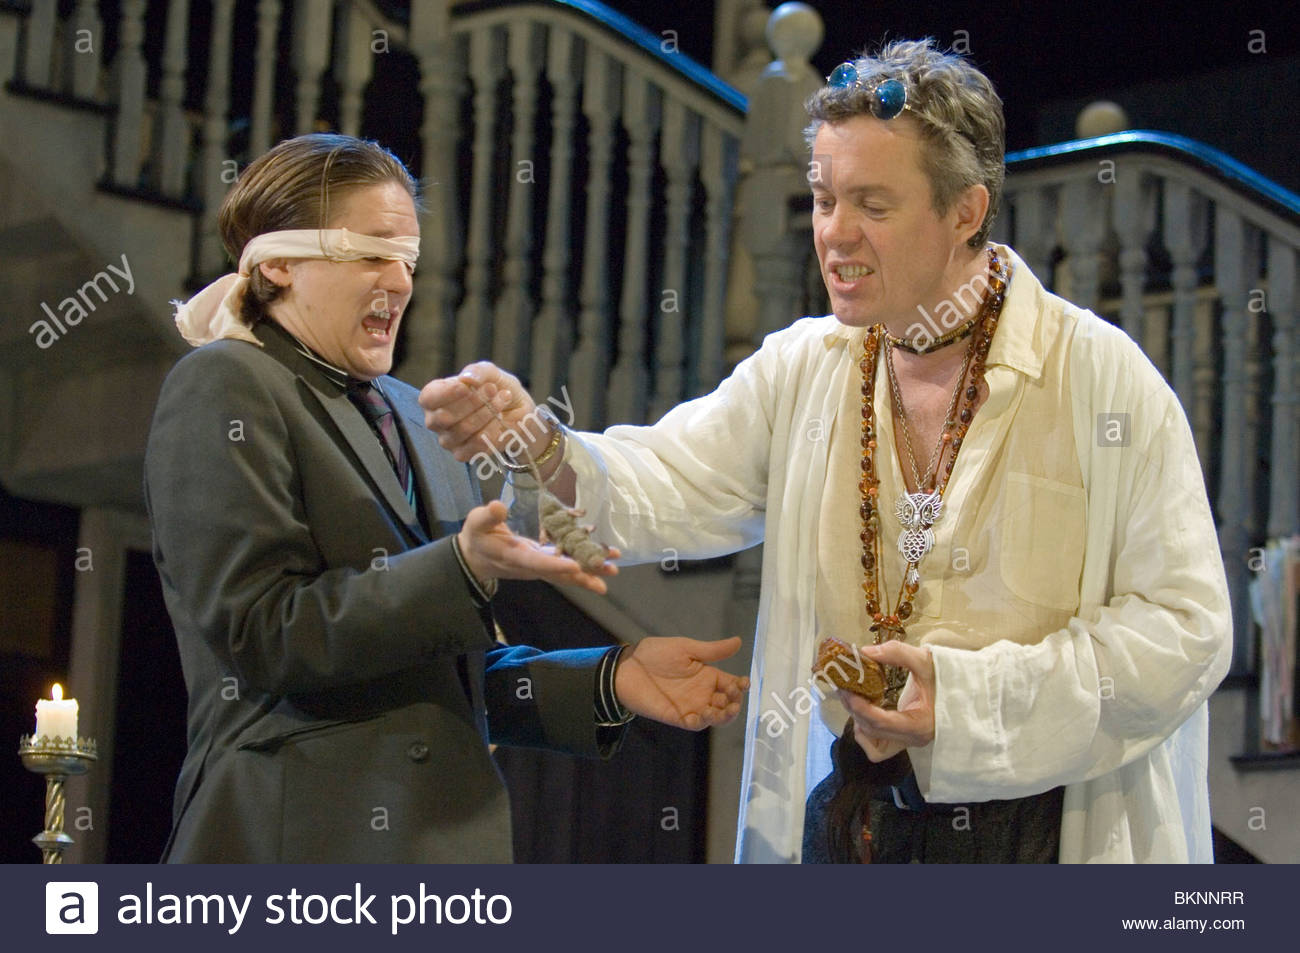 The Alchemist by Ben Johnson,directed by Nicholas Hytner. - Stock Image